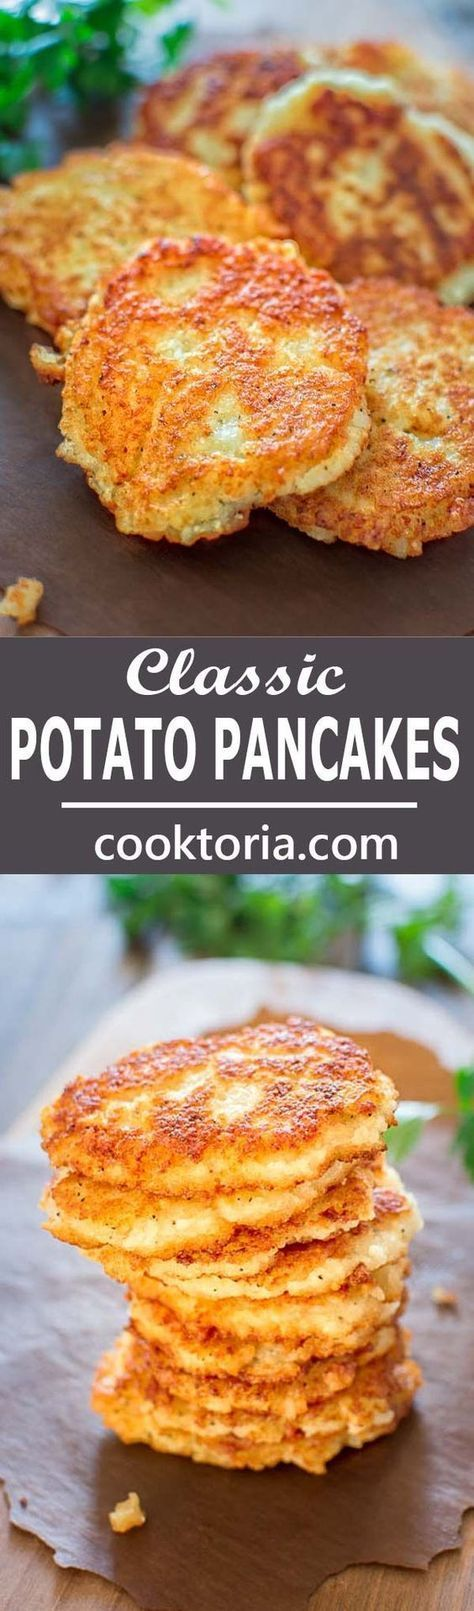 So simple, yet unbelievably tasty, these Classic Potato Pancakes are not to be missed! ❤️ http://COOKTORIA.COM